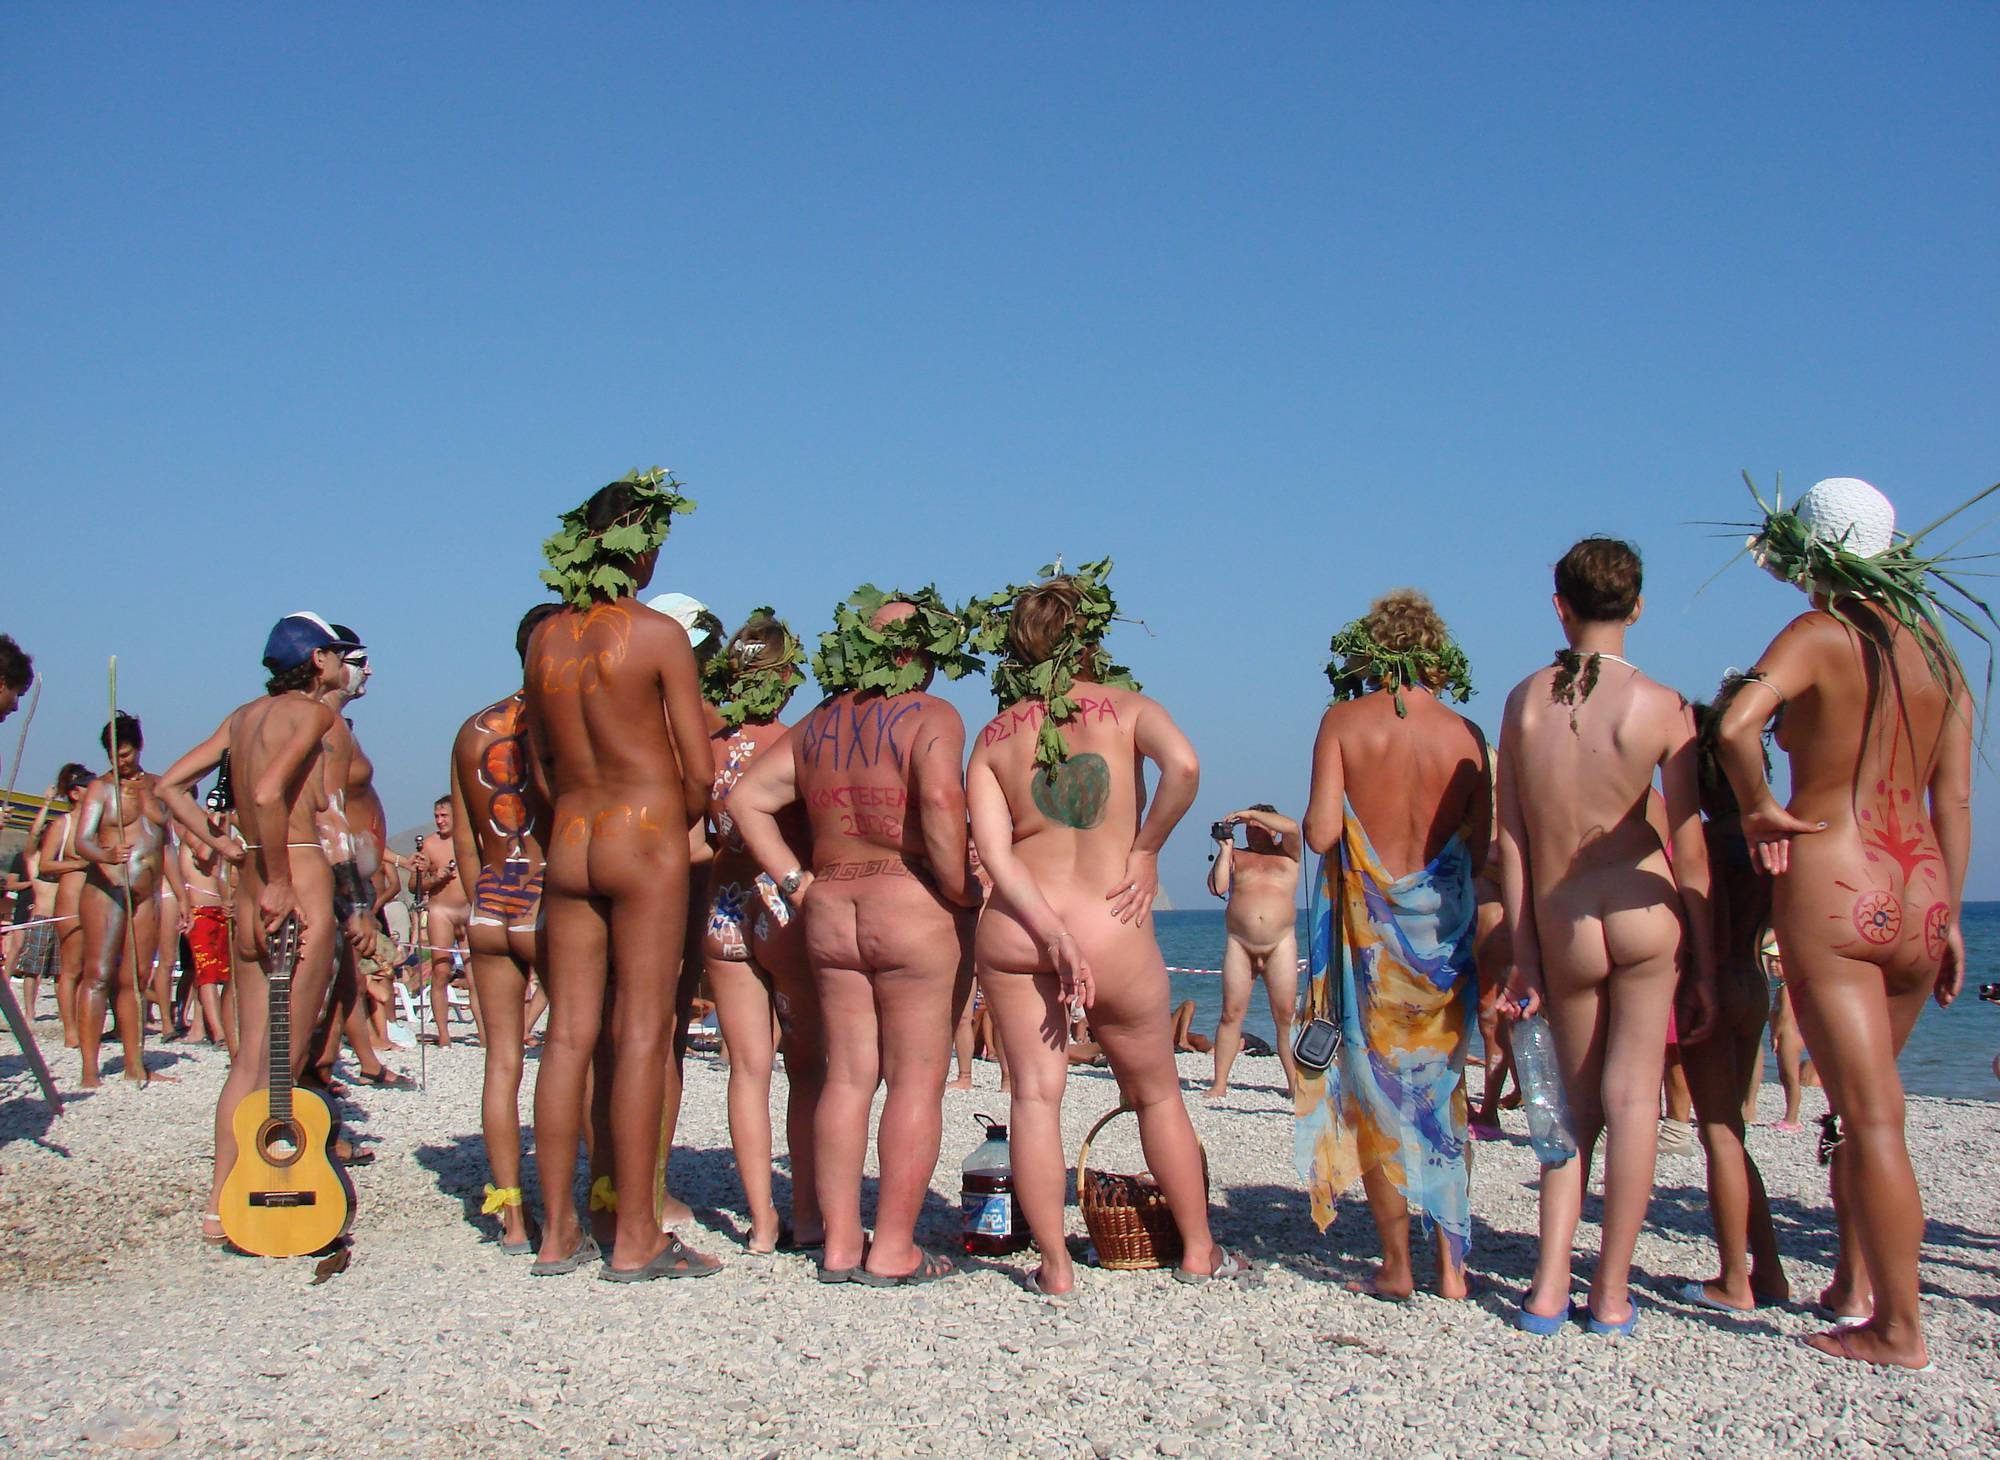 Nudist Pics Neptune Day Sunny Group - 1